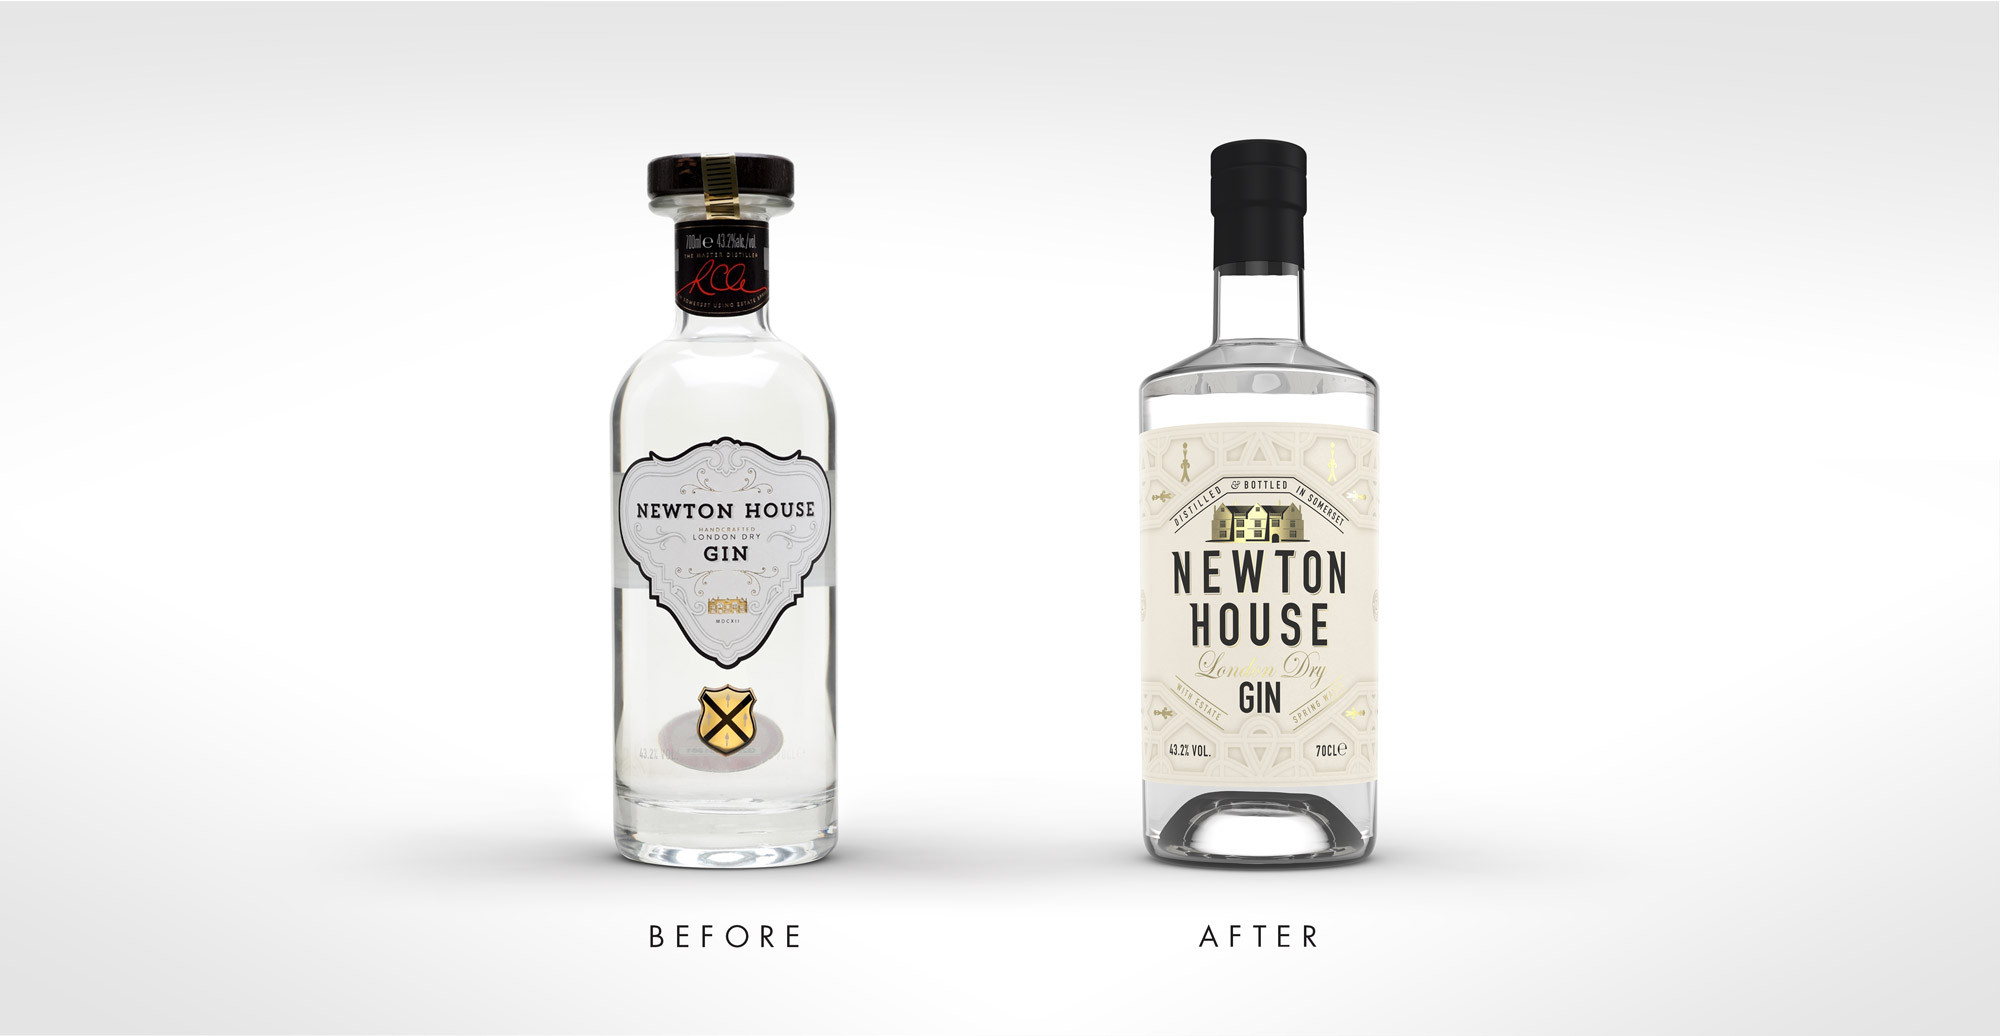 Newton-House-Gin-Branding-and-Packaging-Before-After.jpg